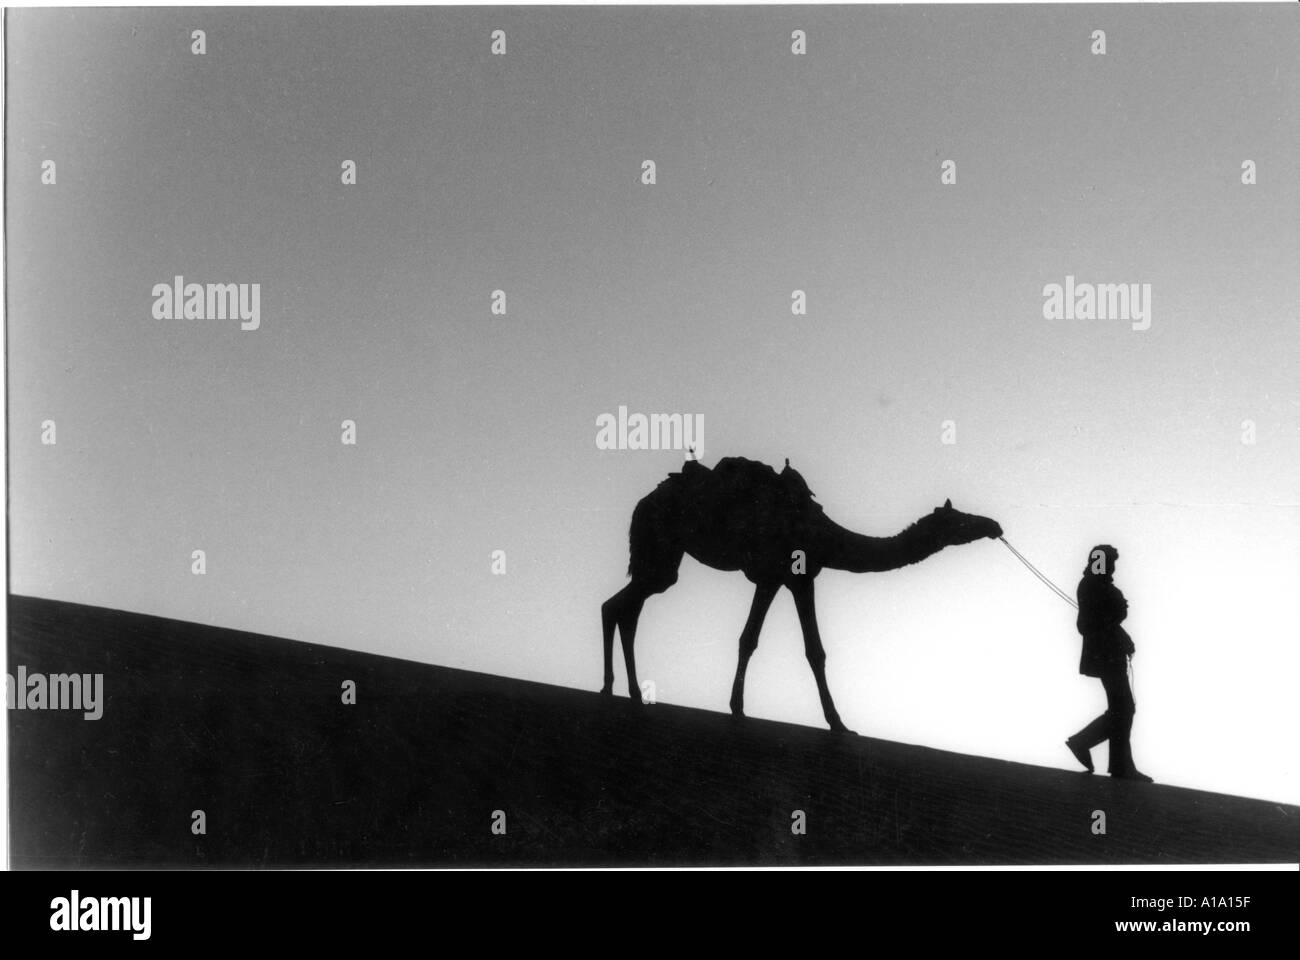 Bedouin man black and white stock photos images alamy